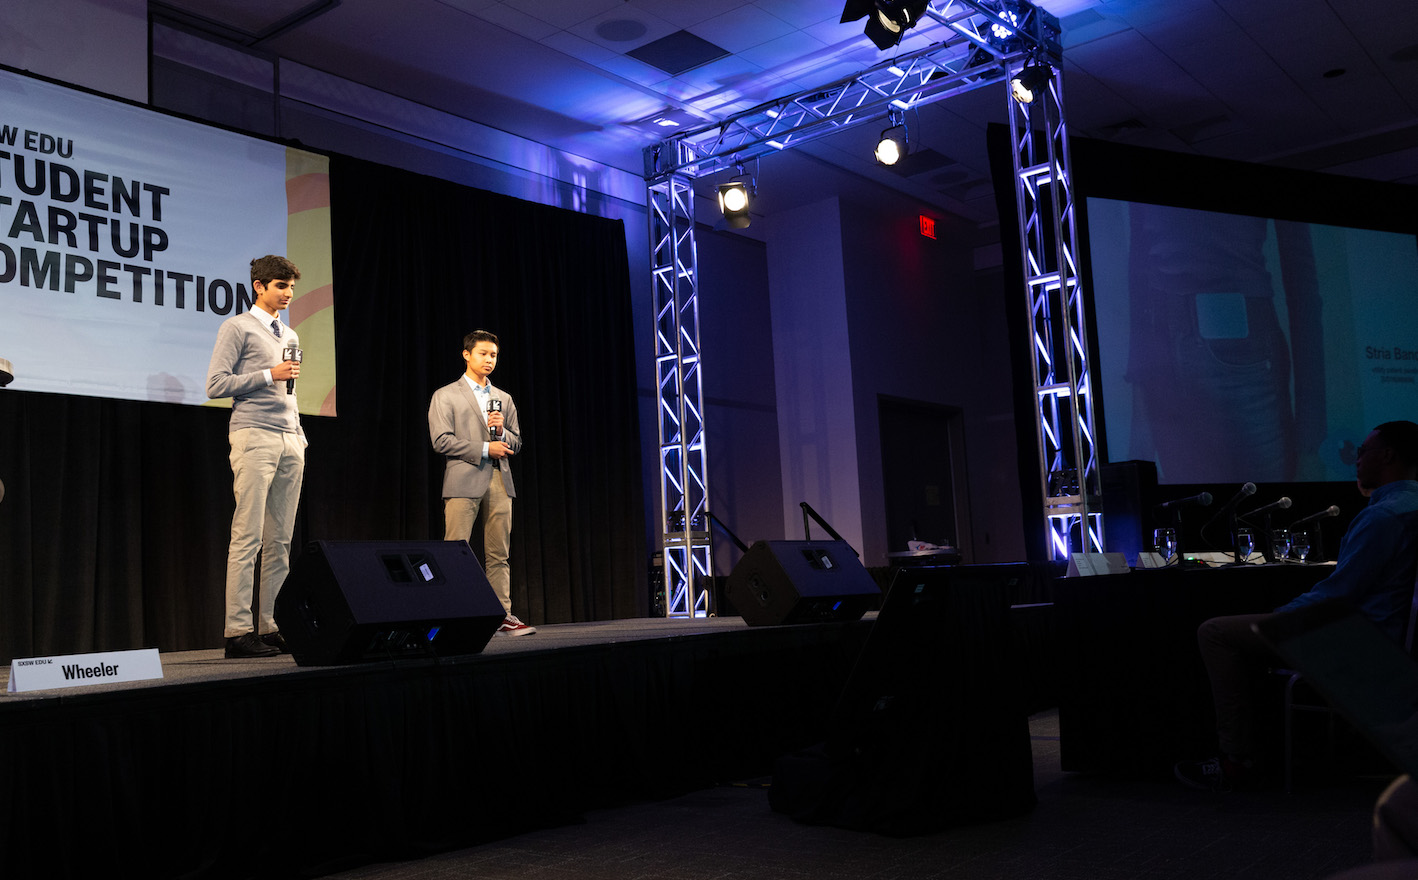 SXSW EDU 2019 Student Startup Competition photo by Steve Rogers